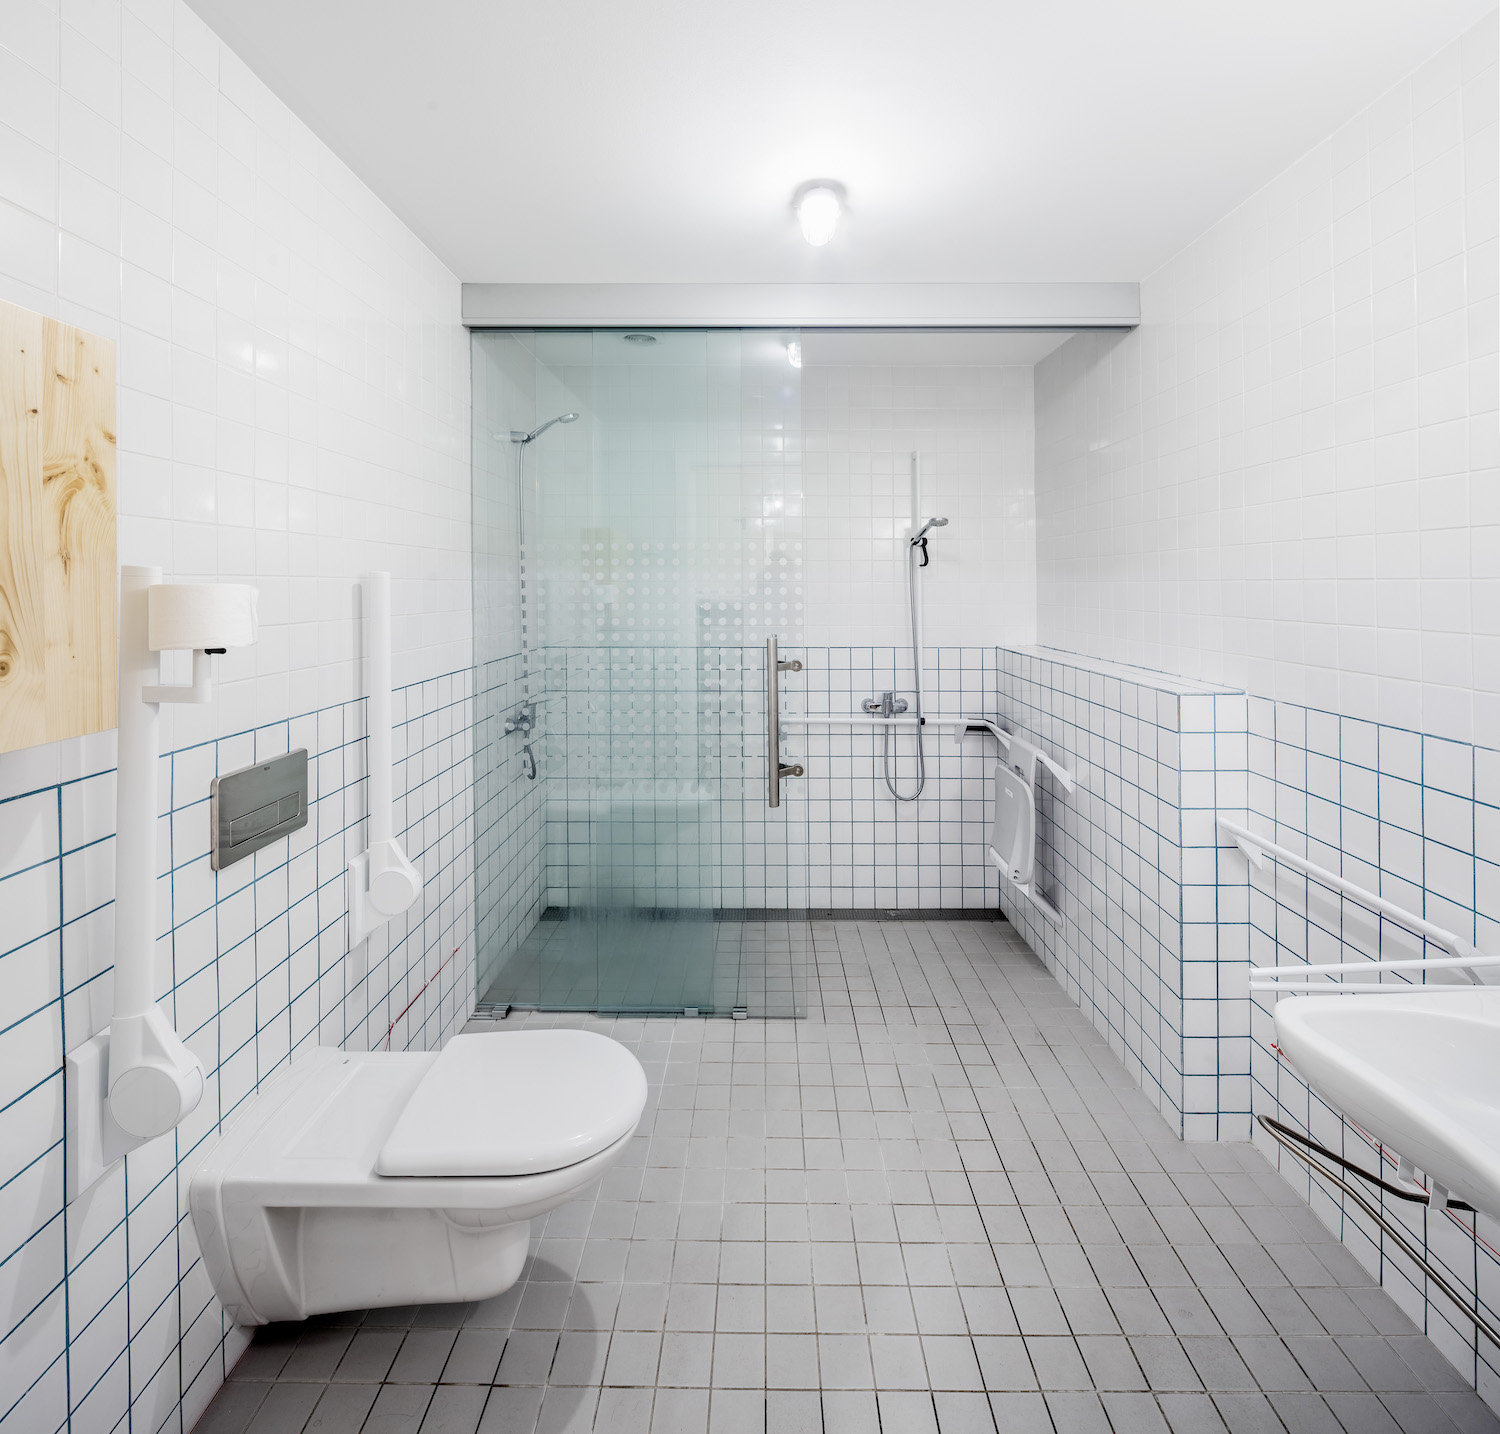 Contrast between wall and floor helps people with low vision to detect white bathroom fittings Adrià Goula